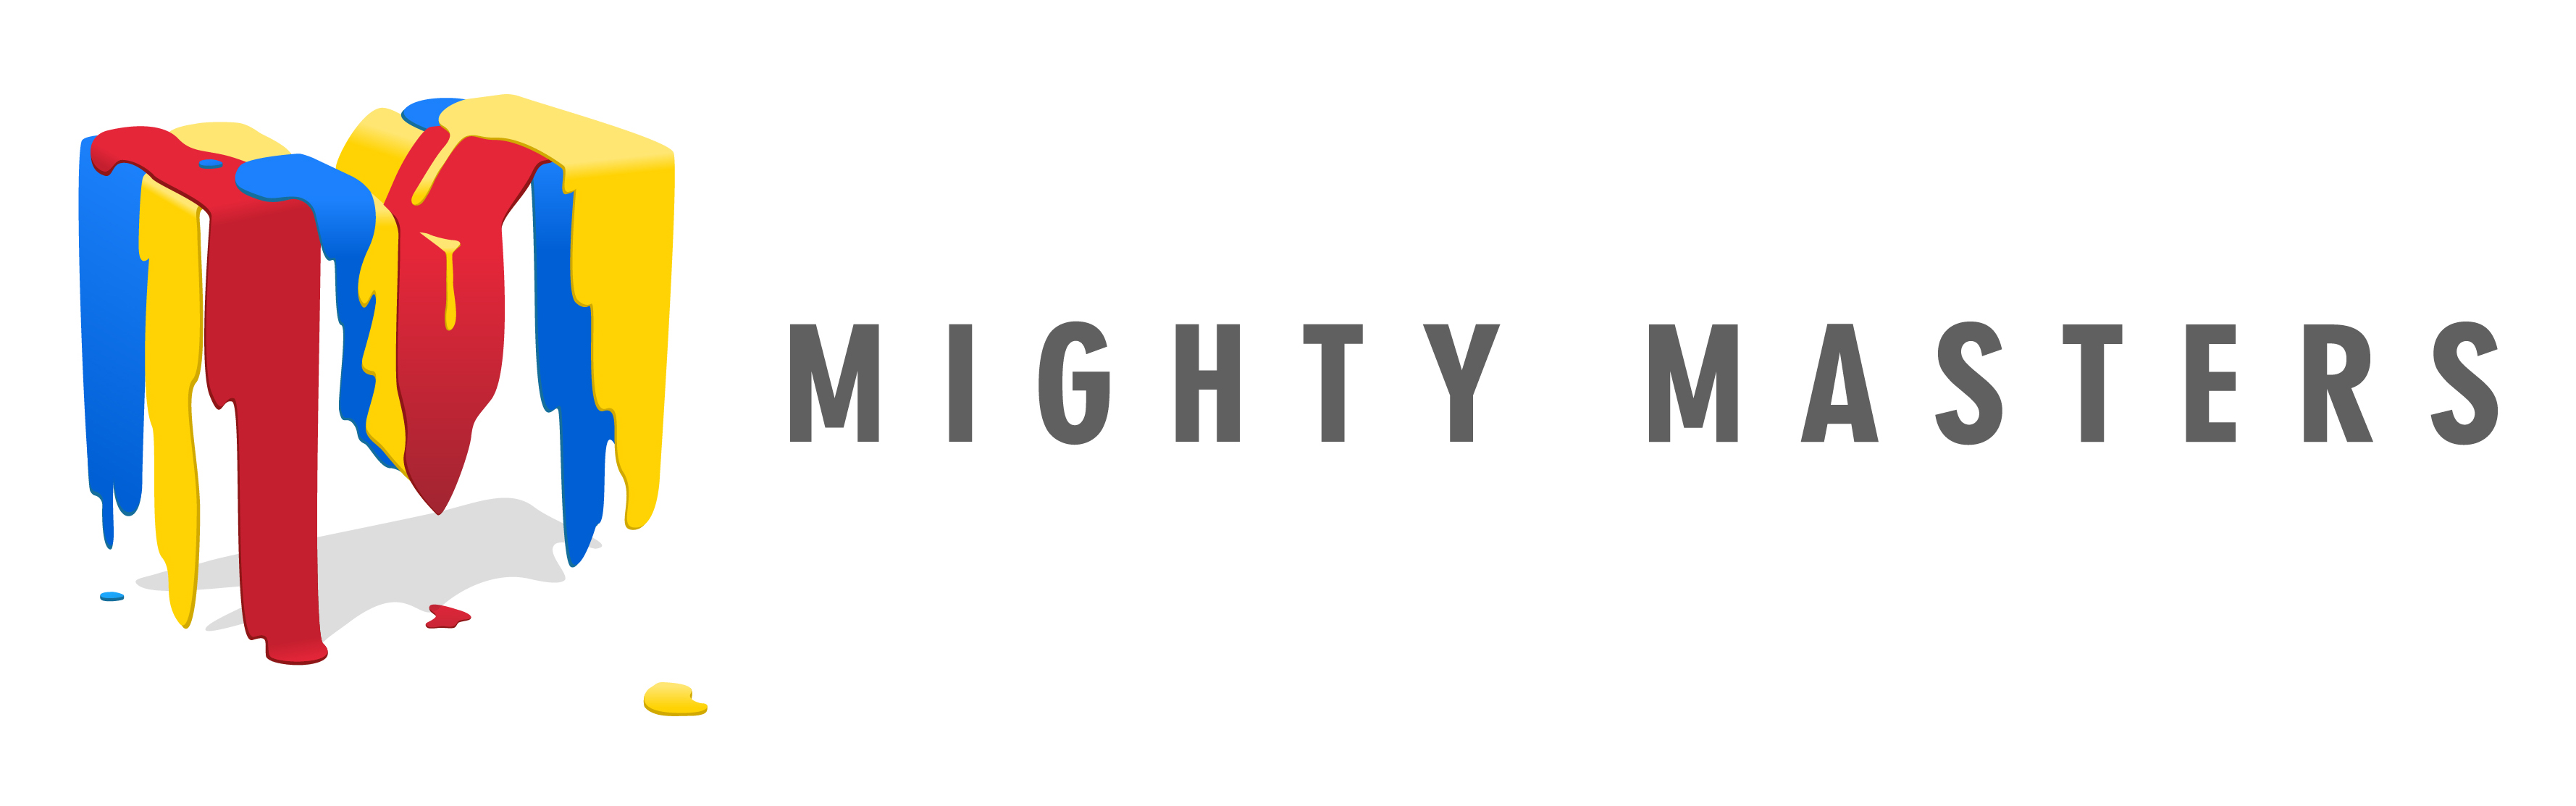 Mighty Masters kids program